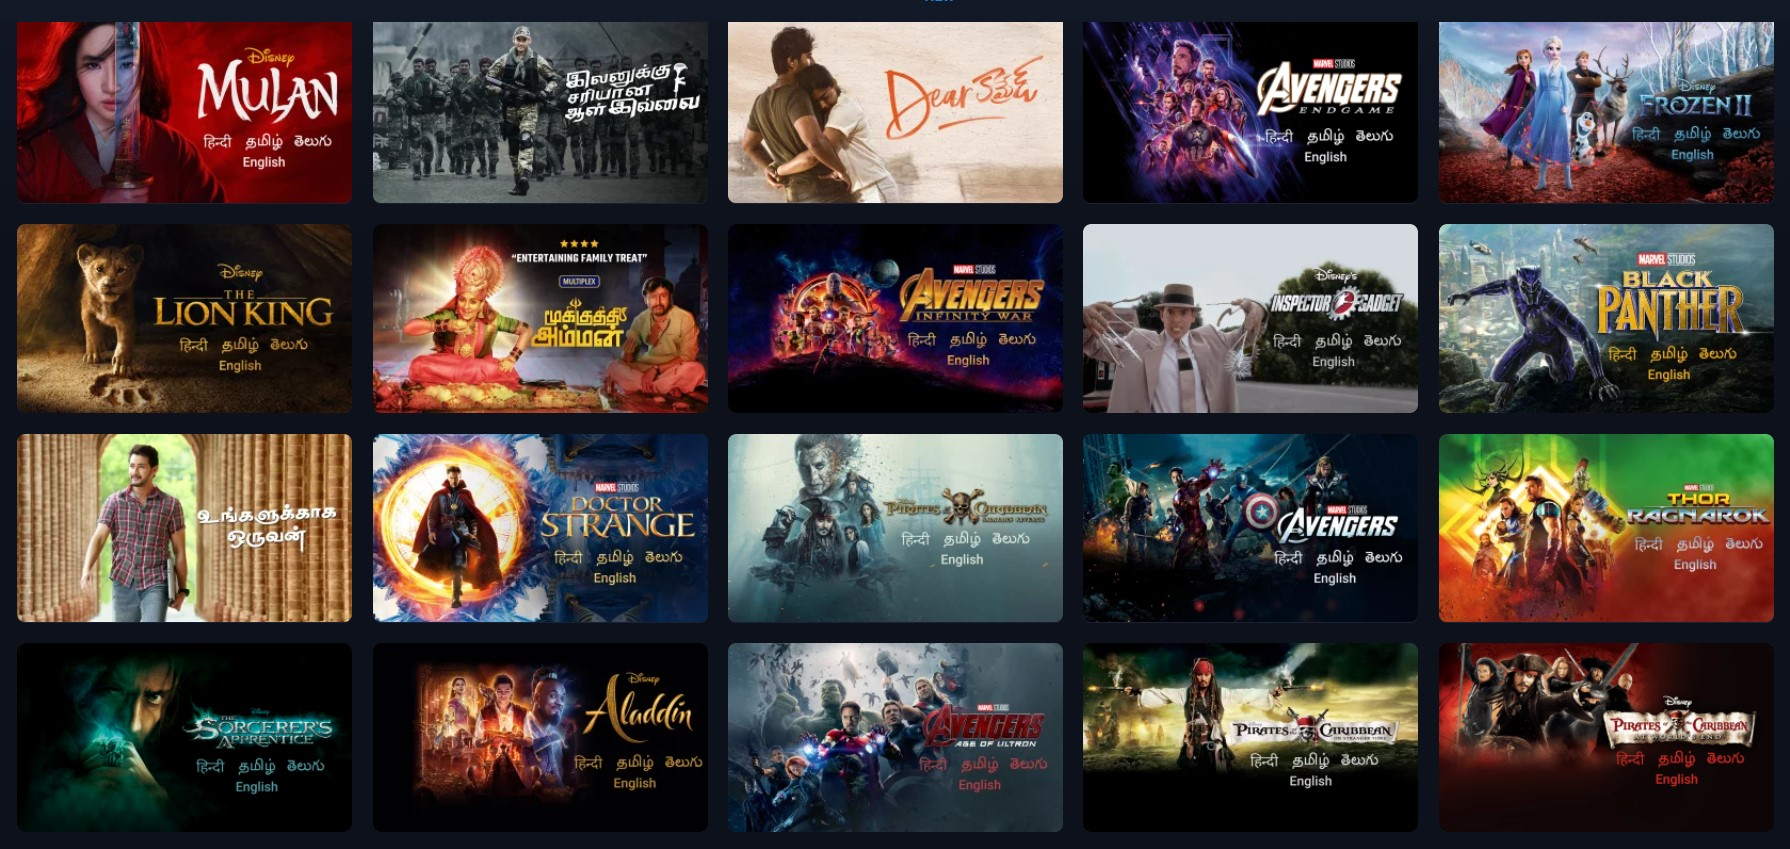 Tamilrockers 2021: Tamil Movies Download HD & Free Latest Download Tamil  Movies 720p, 1080p